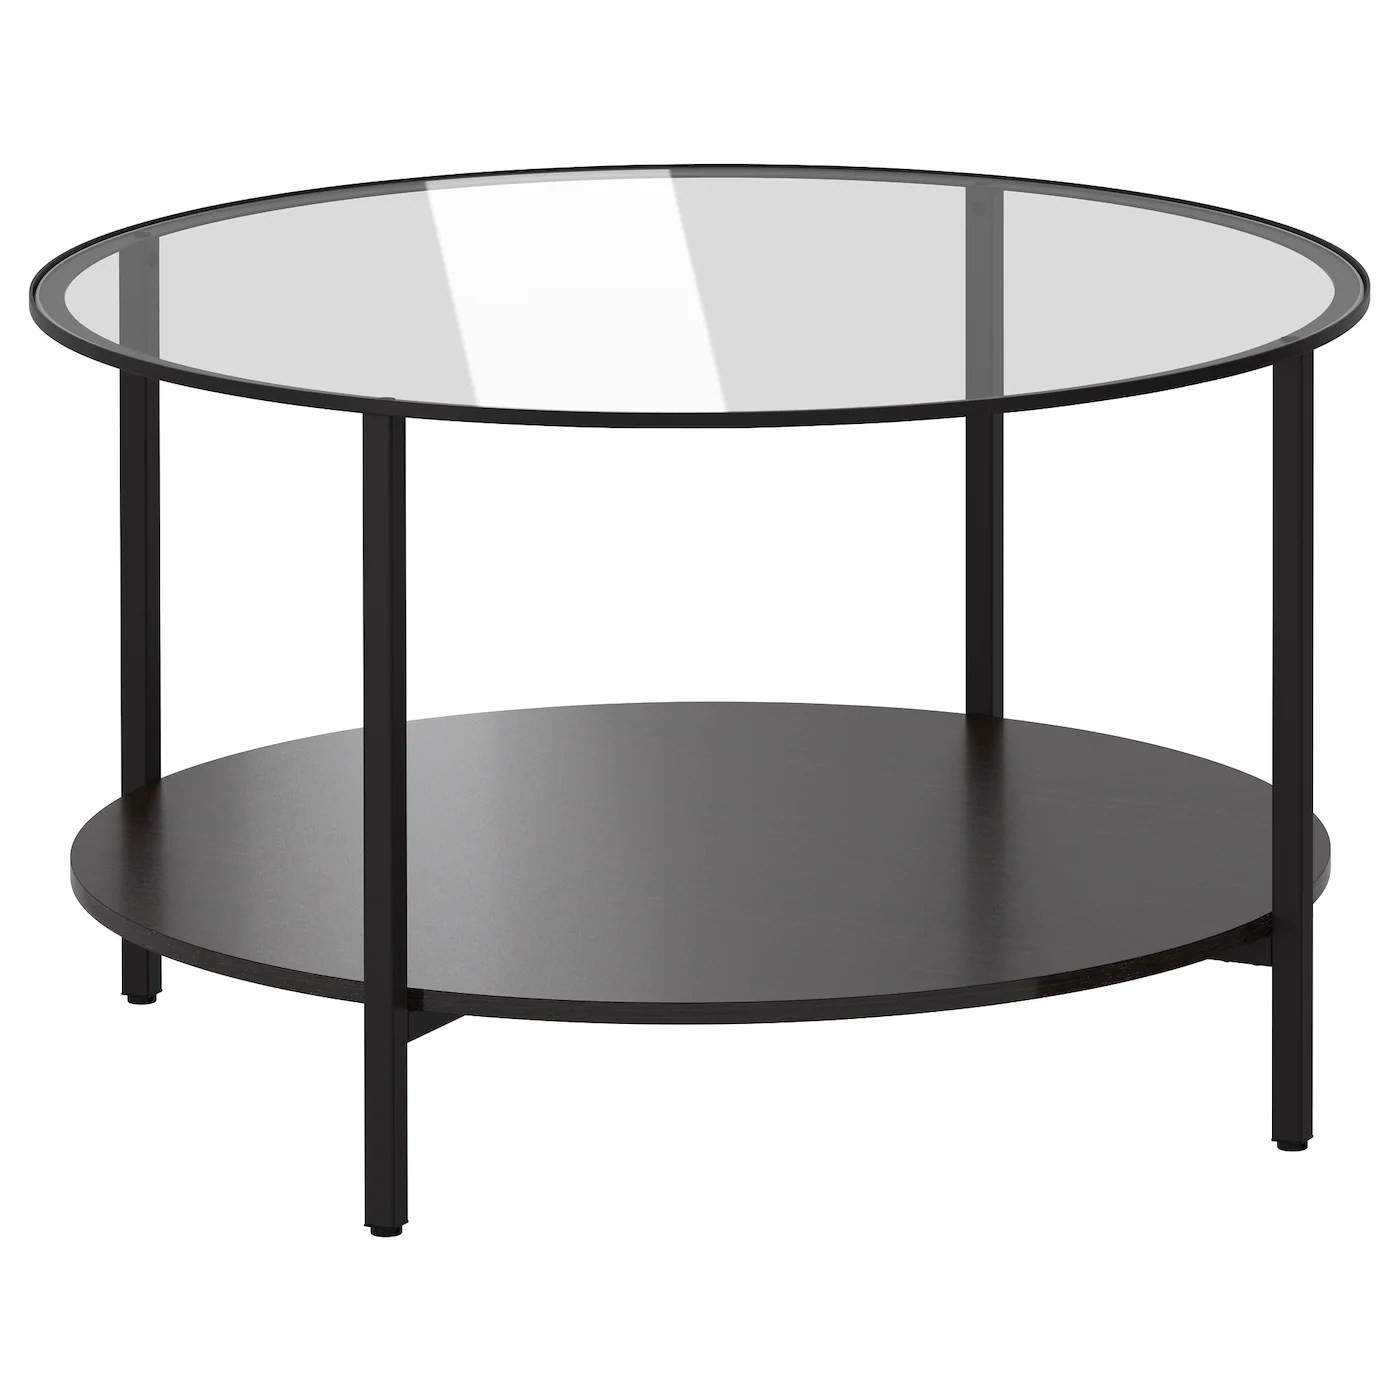 Table Ikea En Verre VittsjÖ Table Basse Brun Noir Verre